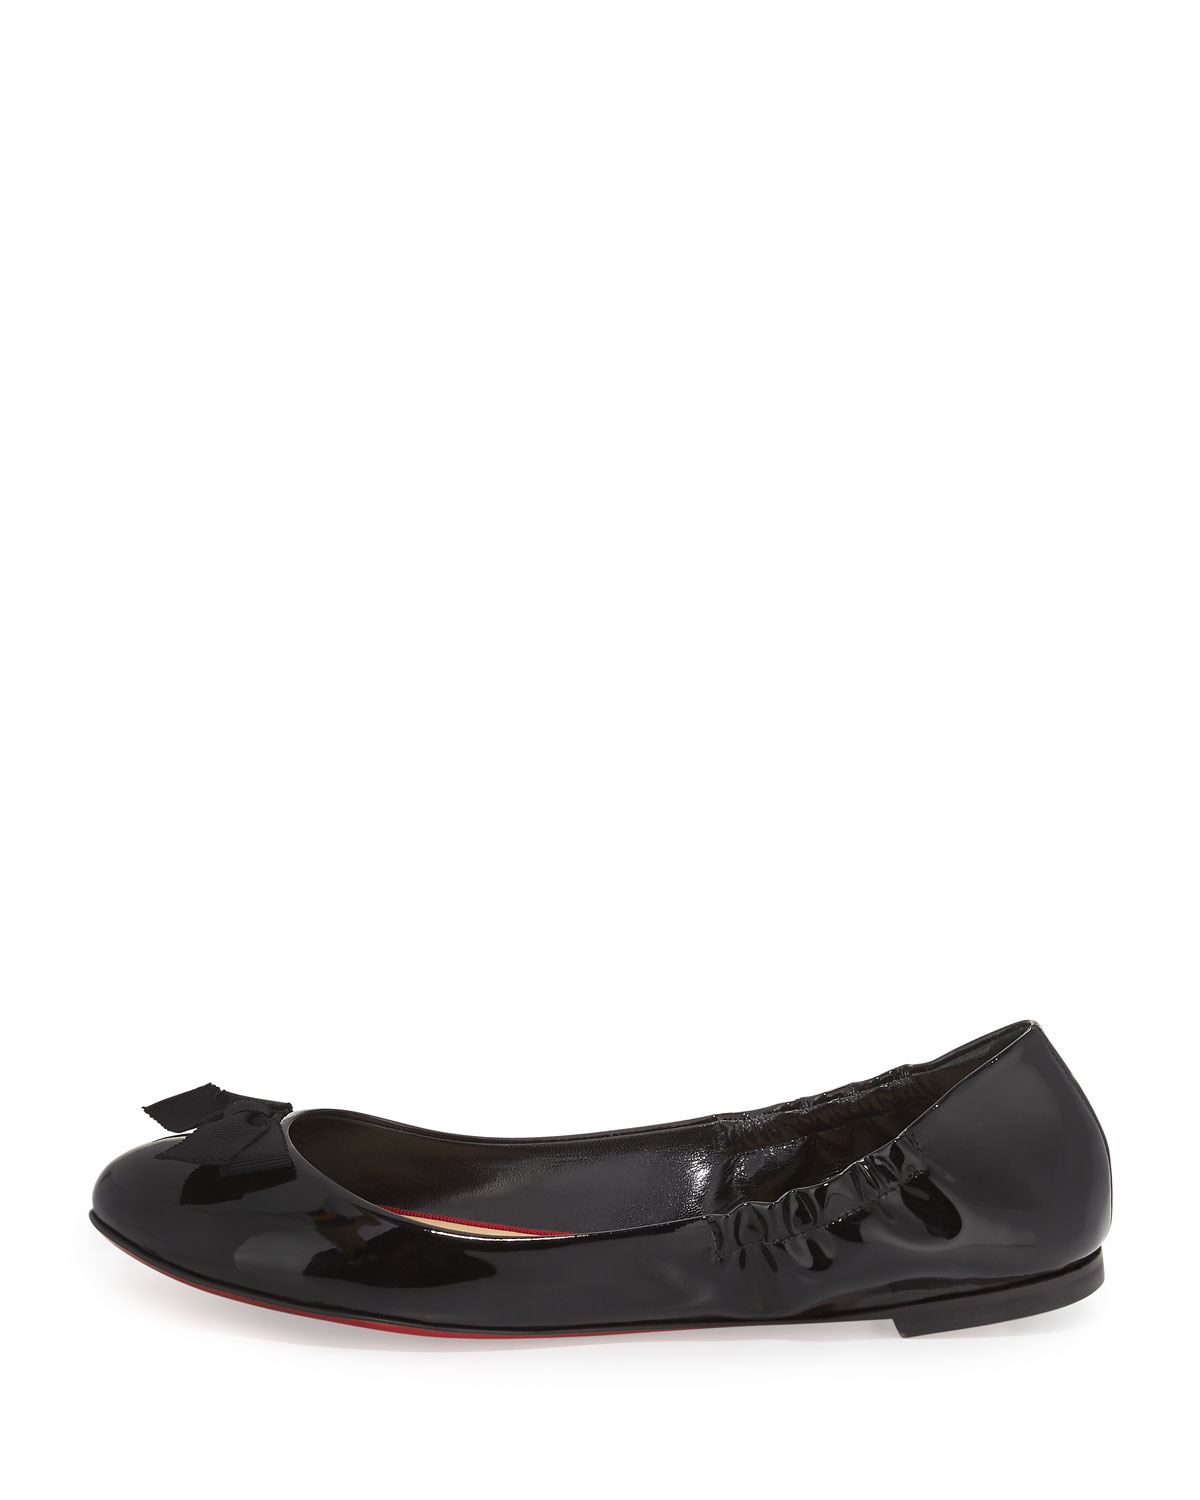 8d2dcf8d06bb Lyst - Christian Louboutin Gloriana Patent-Leather Ballet Flats in Black